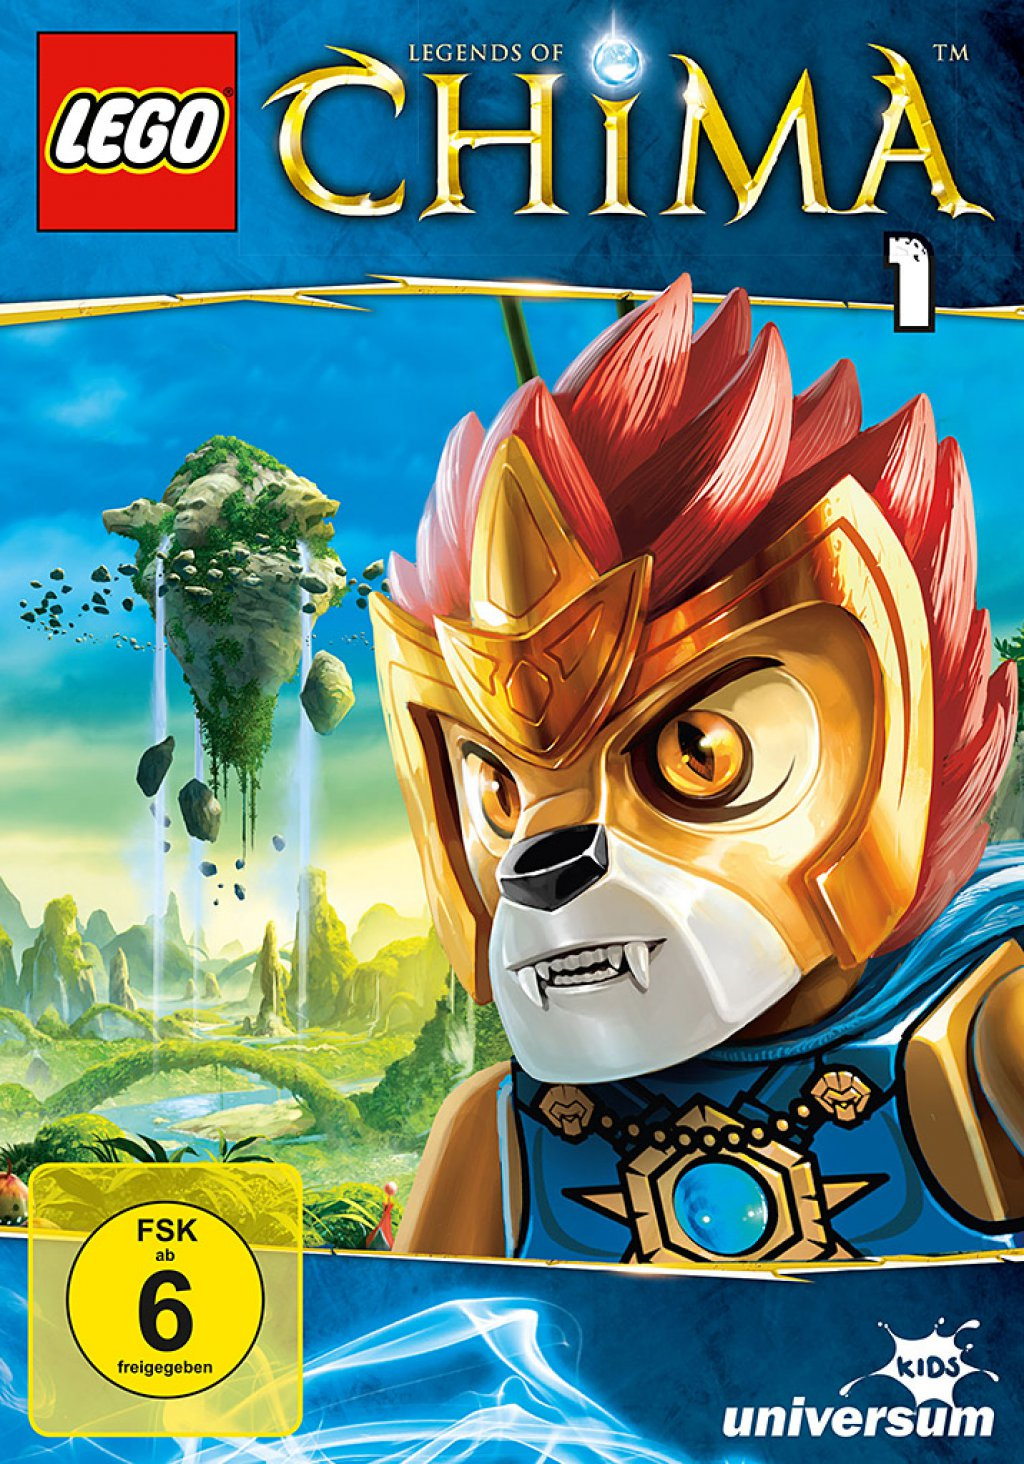 LEGO - Legends of Chima - DVD 1 (DVD)